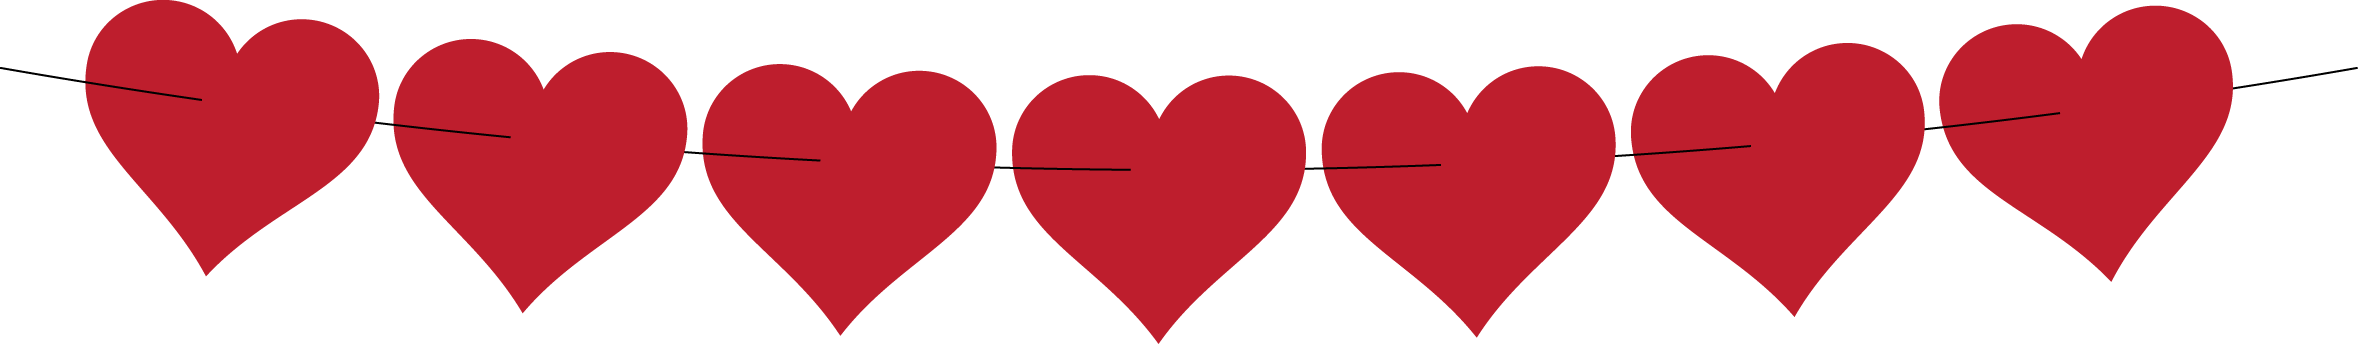 hearts-clipart-heart-chain-8.png